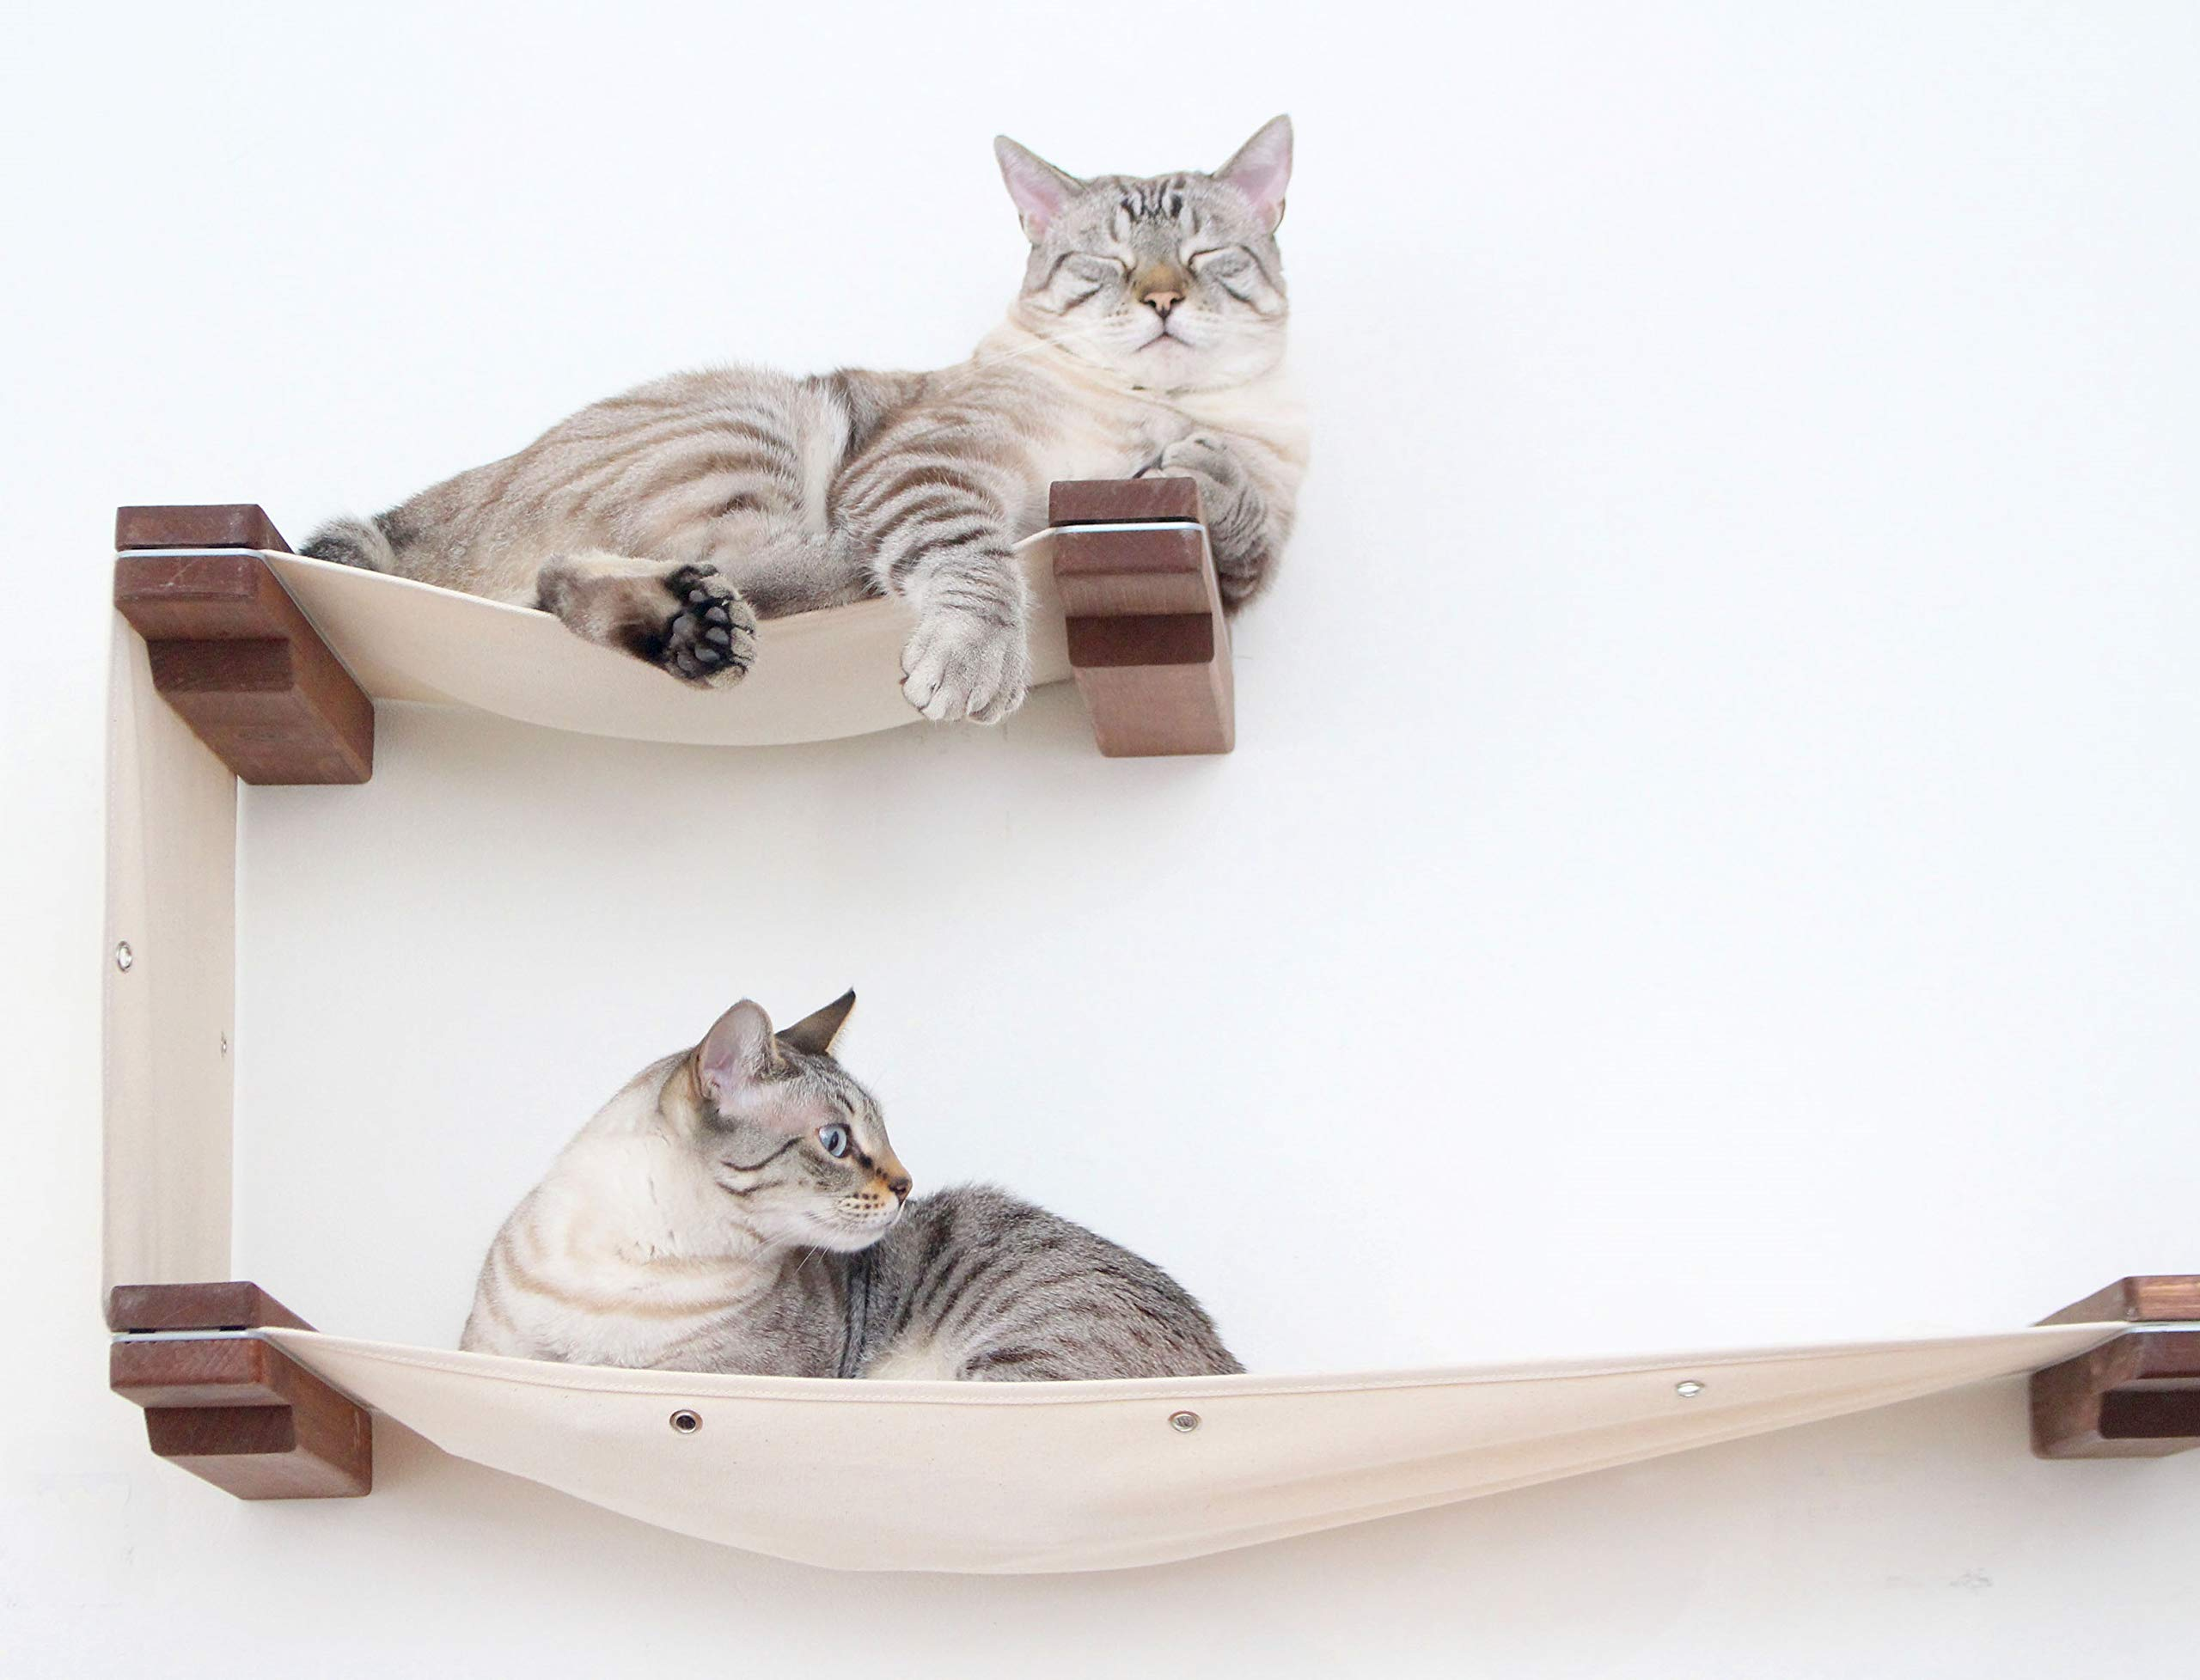 CatastrophiCreations Cat Double Decker Wall Mounted Lounge and Play Furniture Cat Tree Shelves - Onyx/Natural, One Size 1